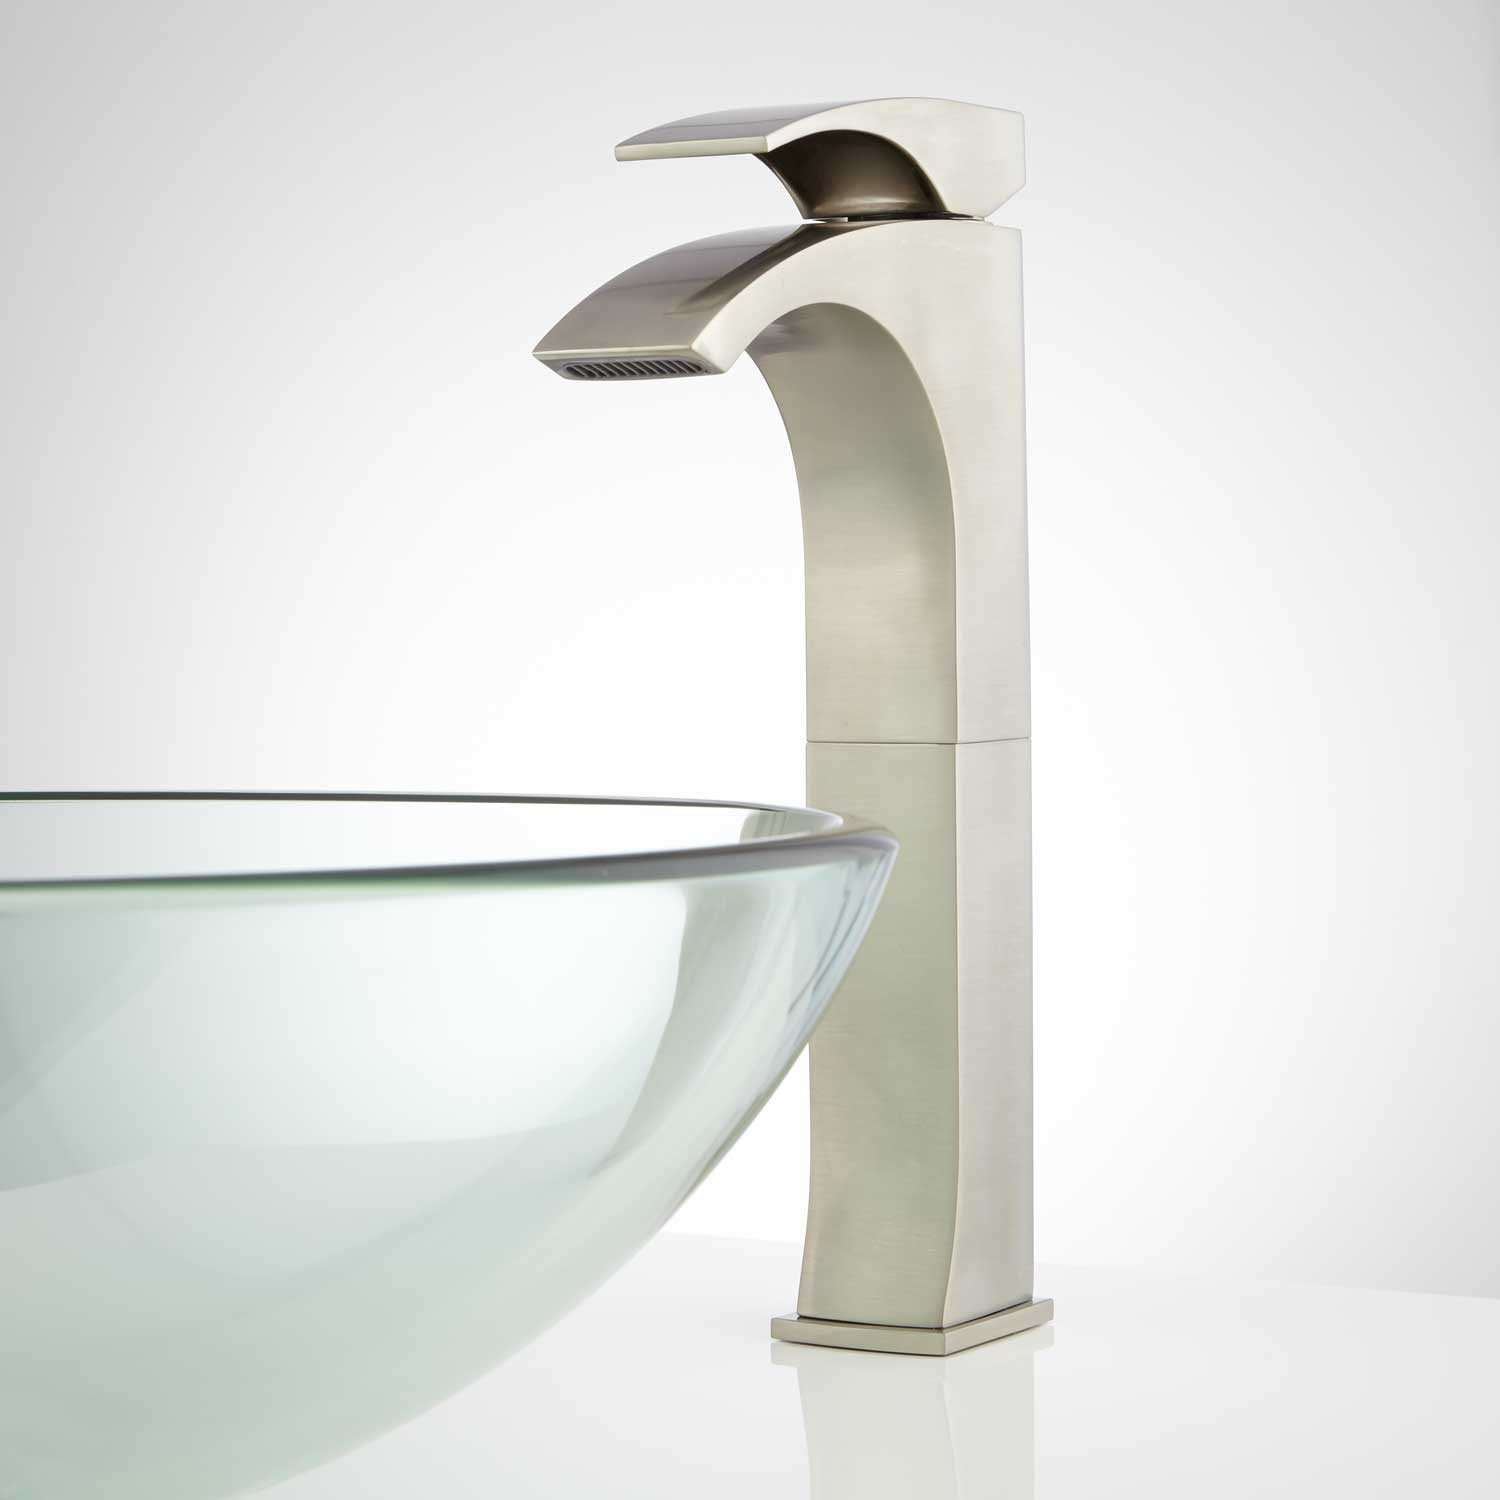 Ideas, montevallo single hole vessel faucet with pop up drain bathroom regarding proportions 1500 x 1500  .